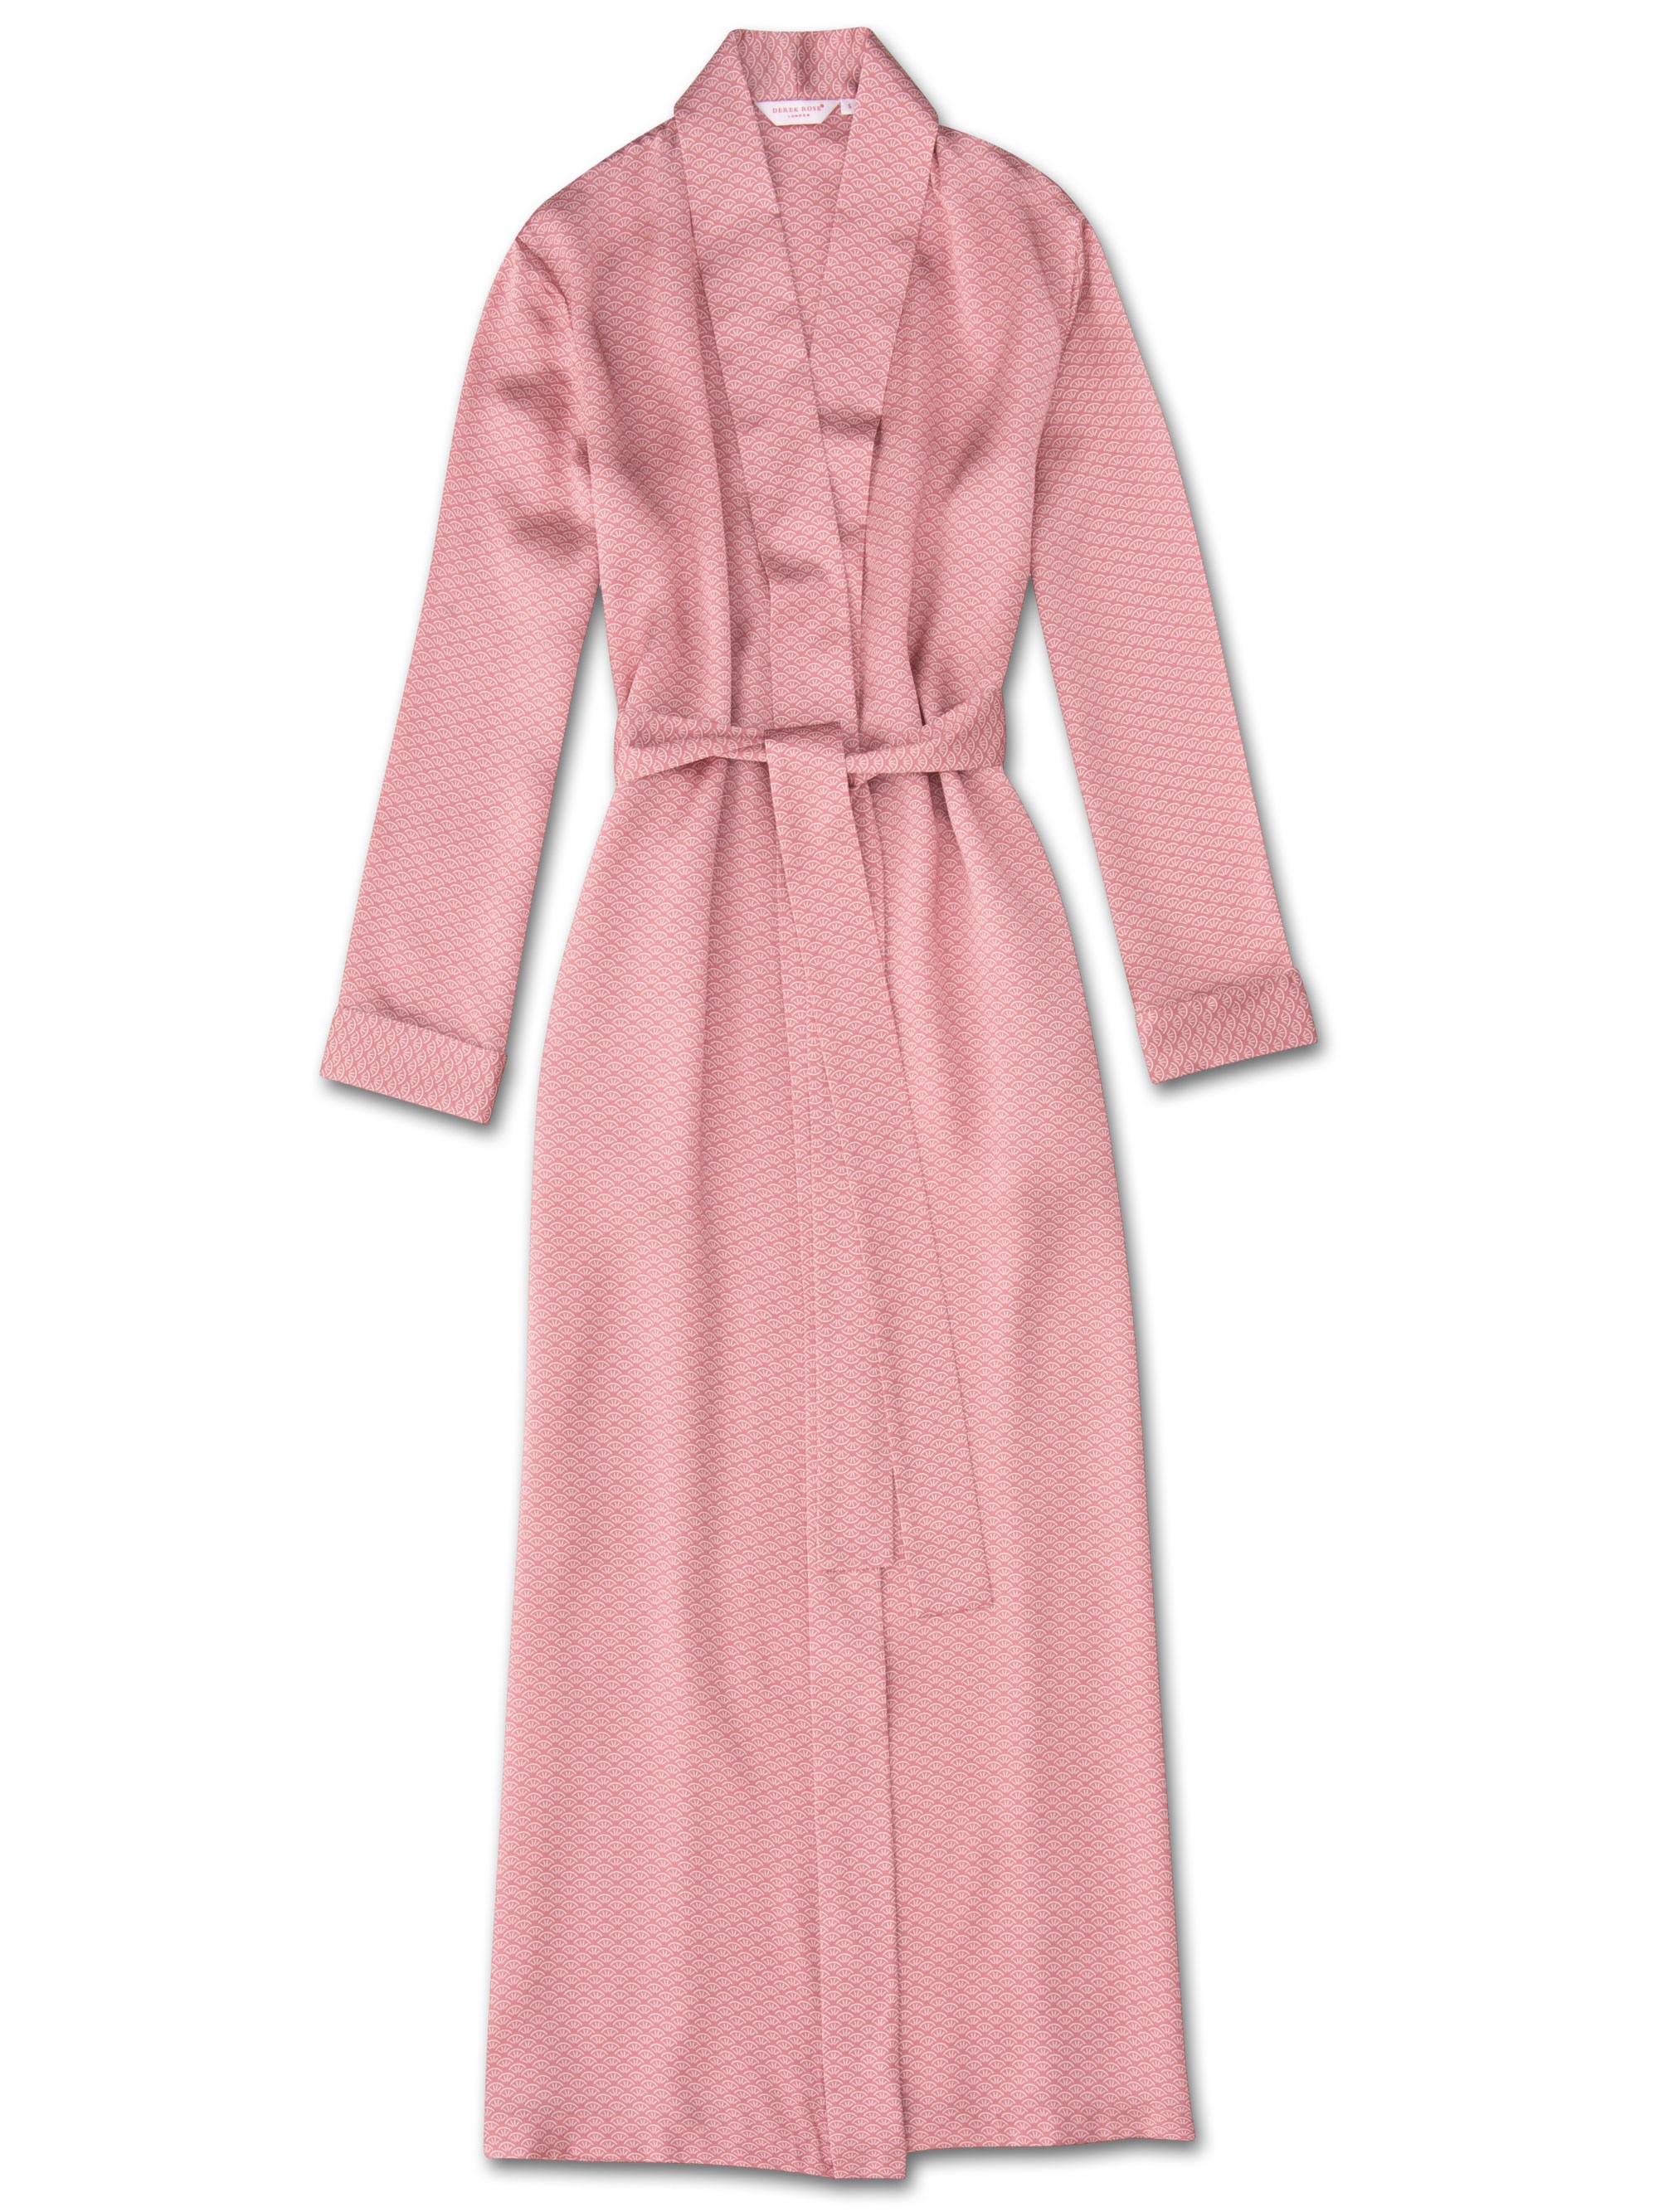 Derek Rose Women's Full Length Dressing Gown Brindisi 26 Pure Silk Satin Pink